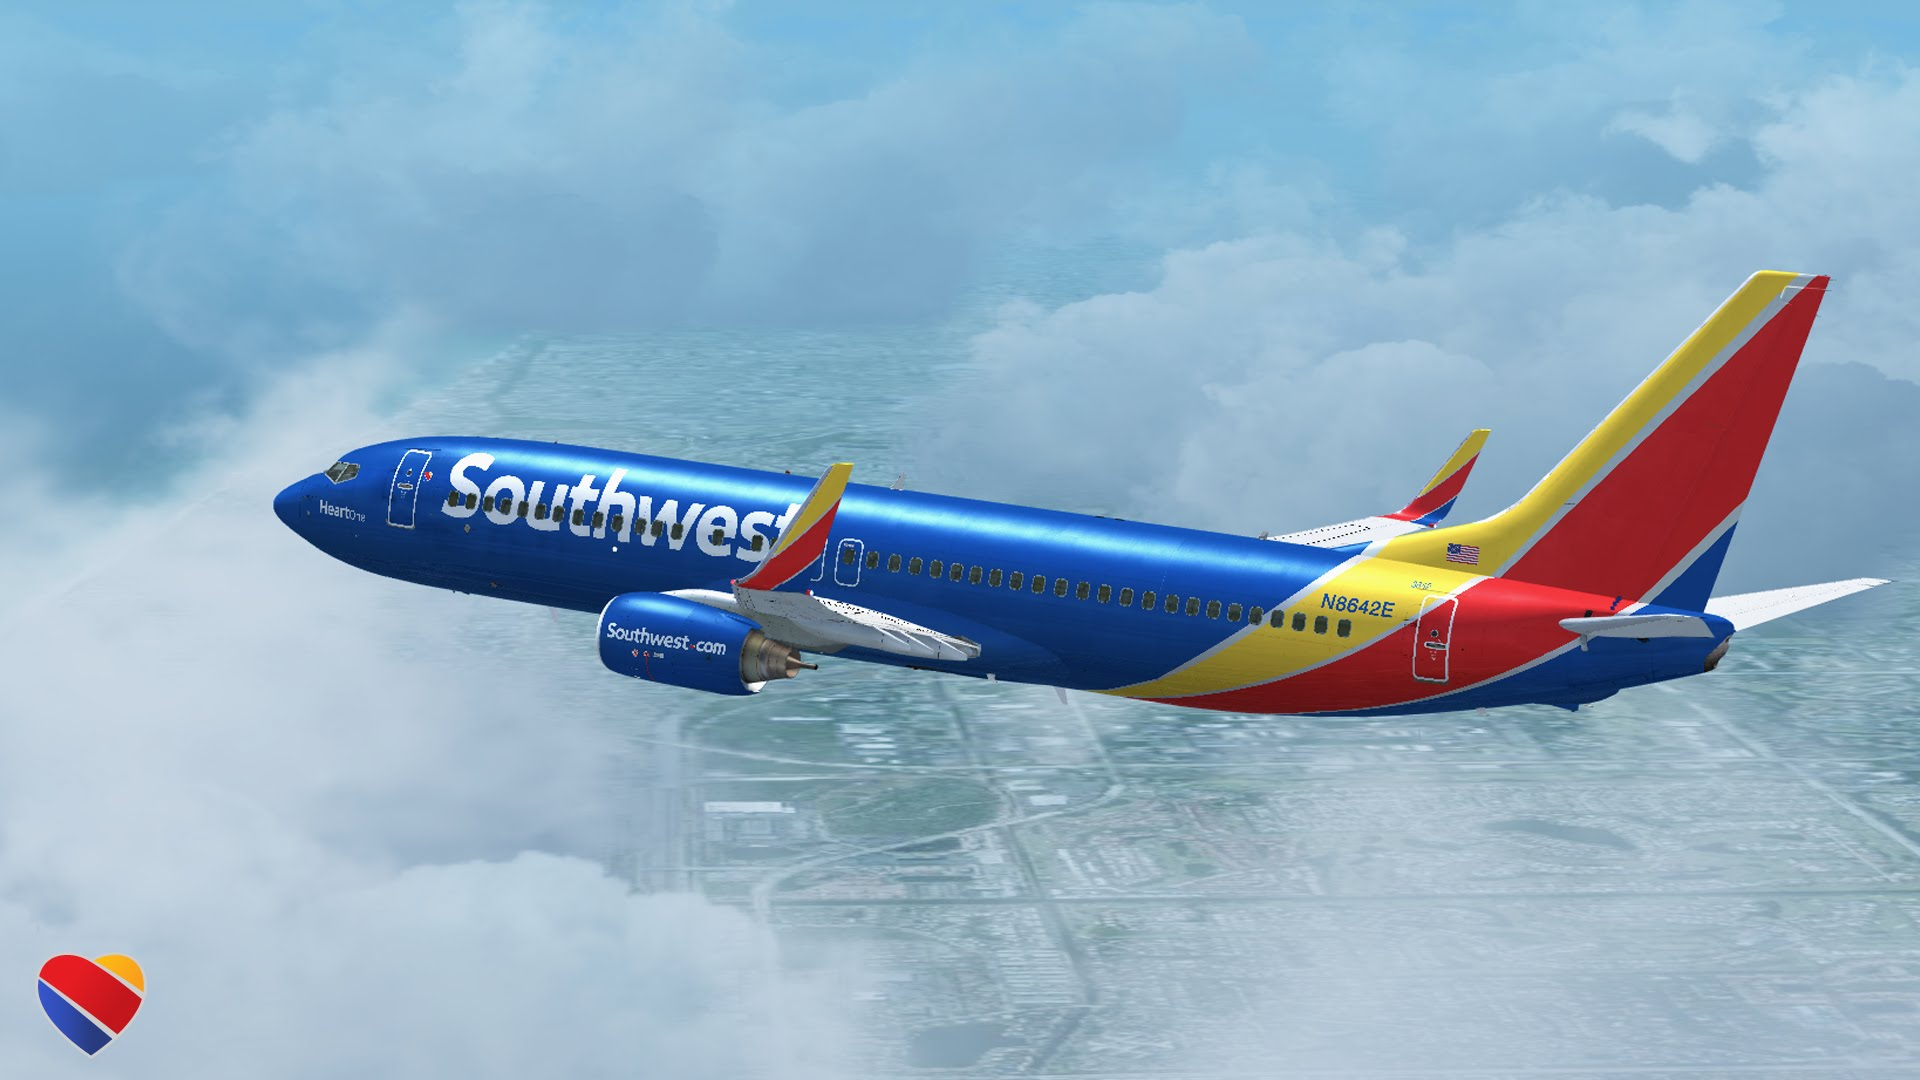 Download Southwest Airlines Wallpaper Gallery HD Wallpapers Download Free Images Wallpaper [1000image.com]